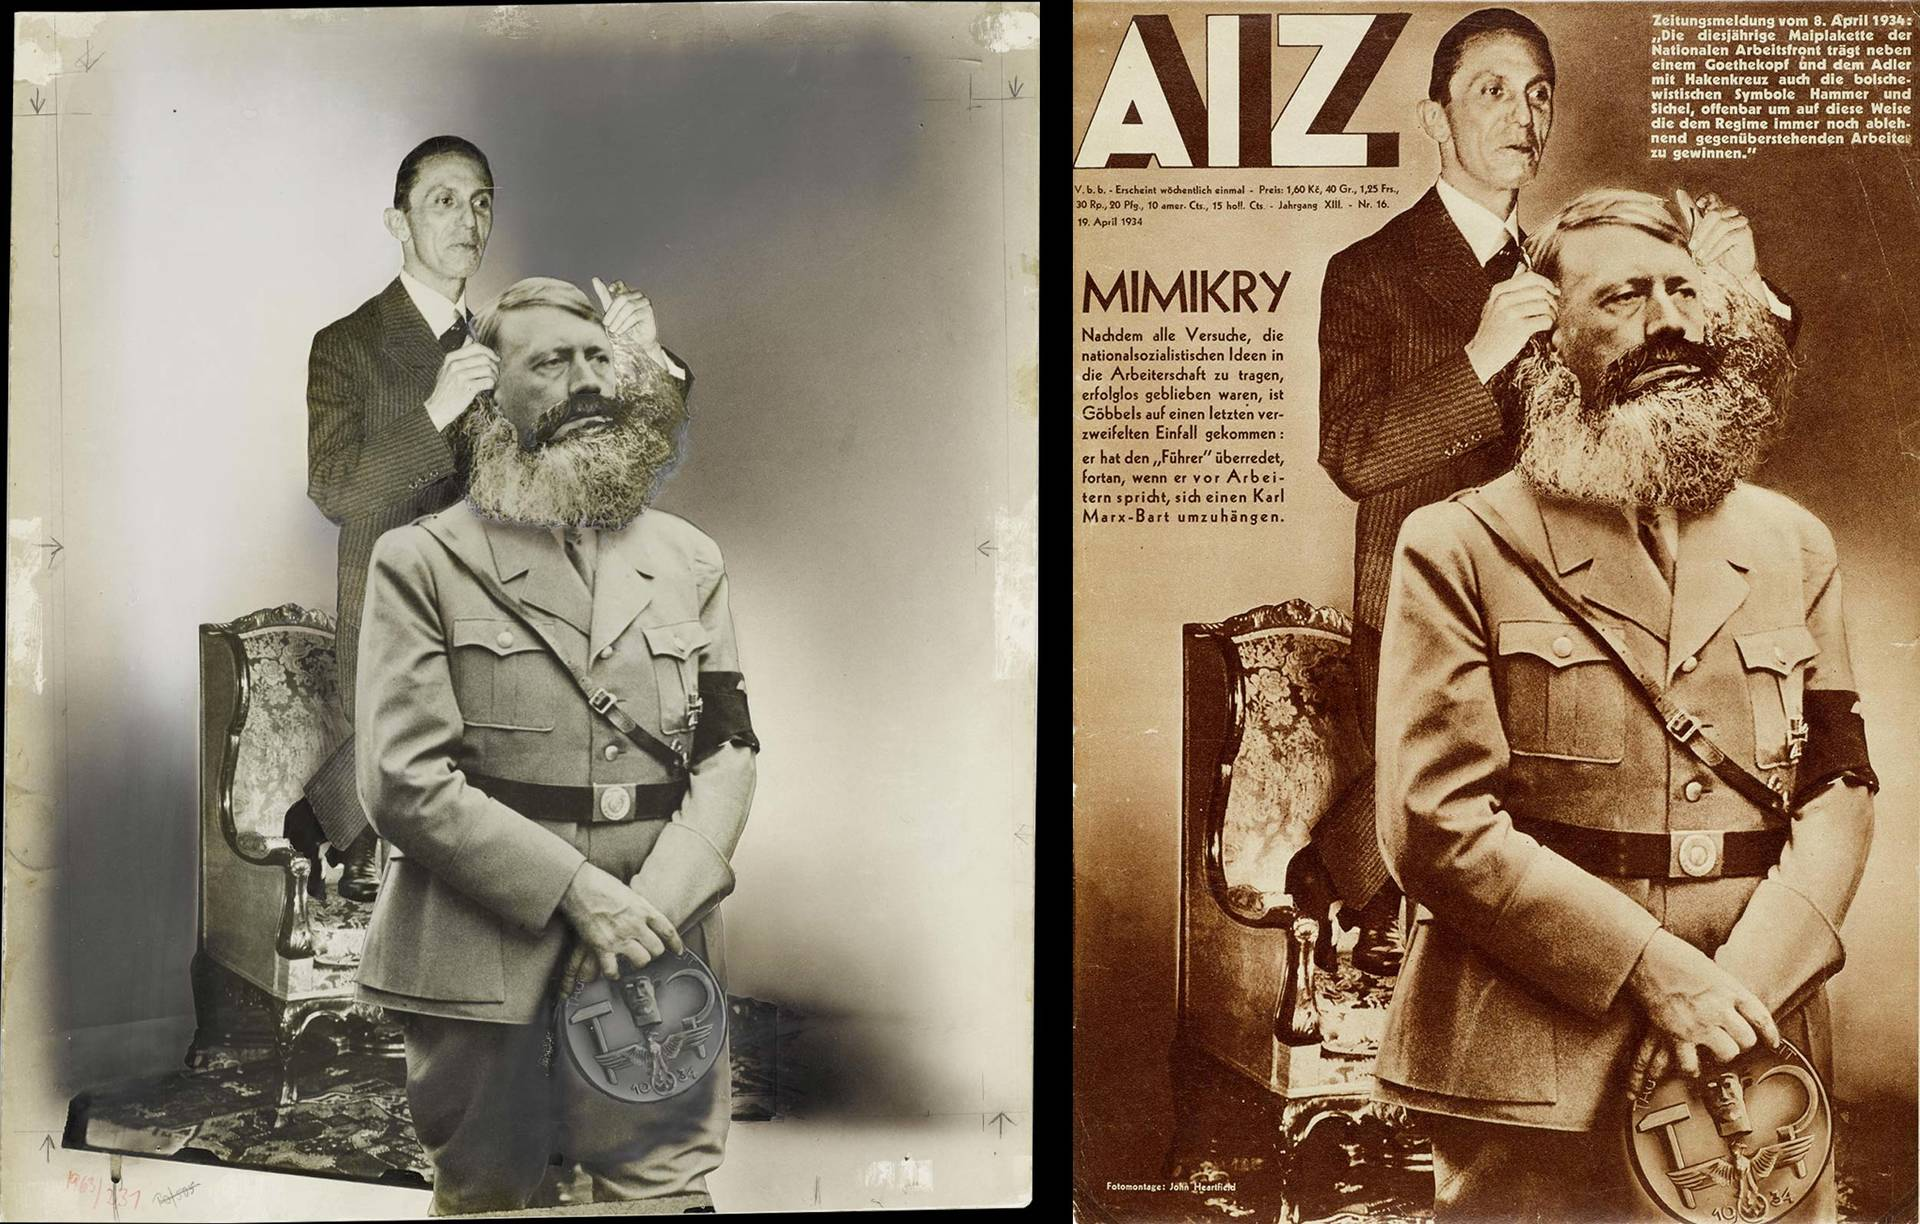 original photomontage and AIZ page, 19.4.1934